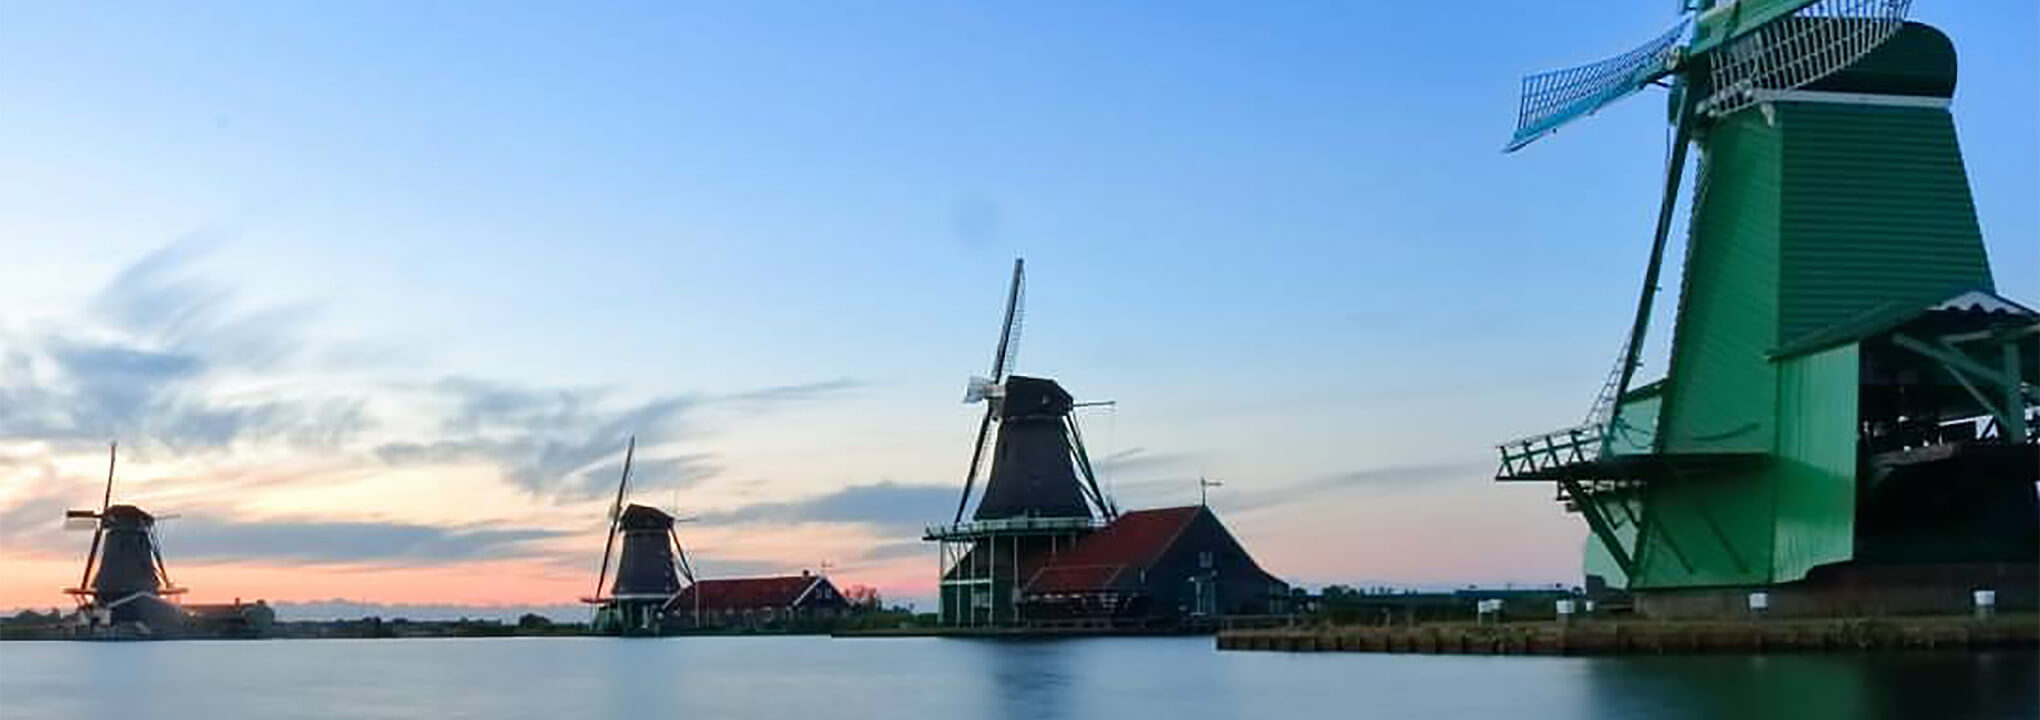 Zaanse Schans visit of Windmills